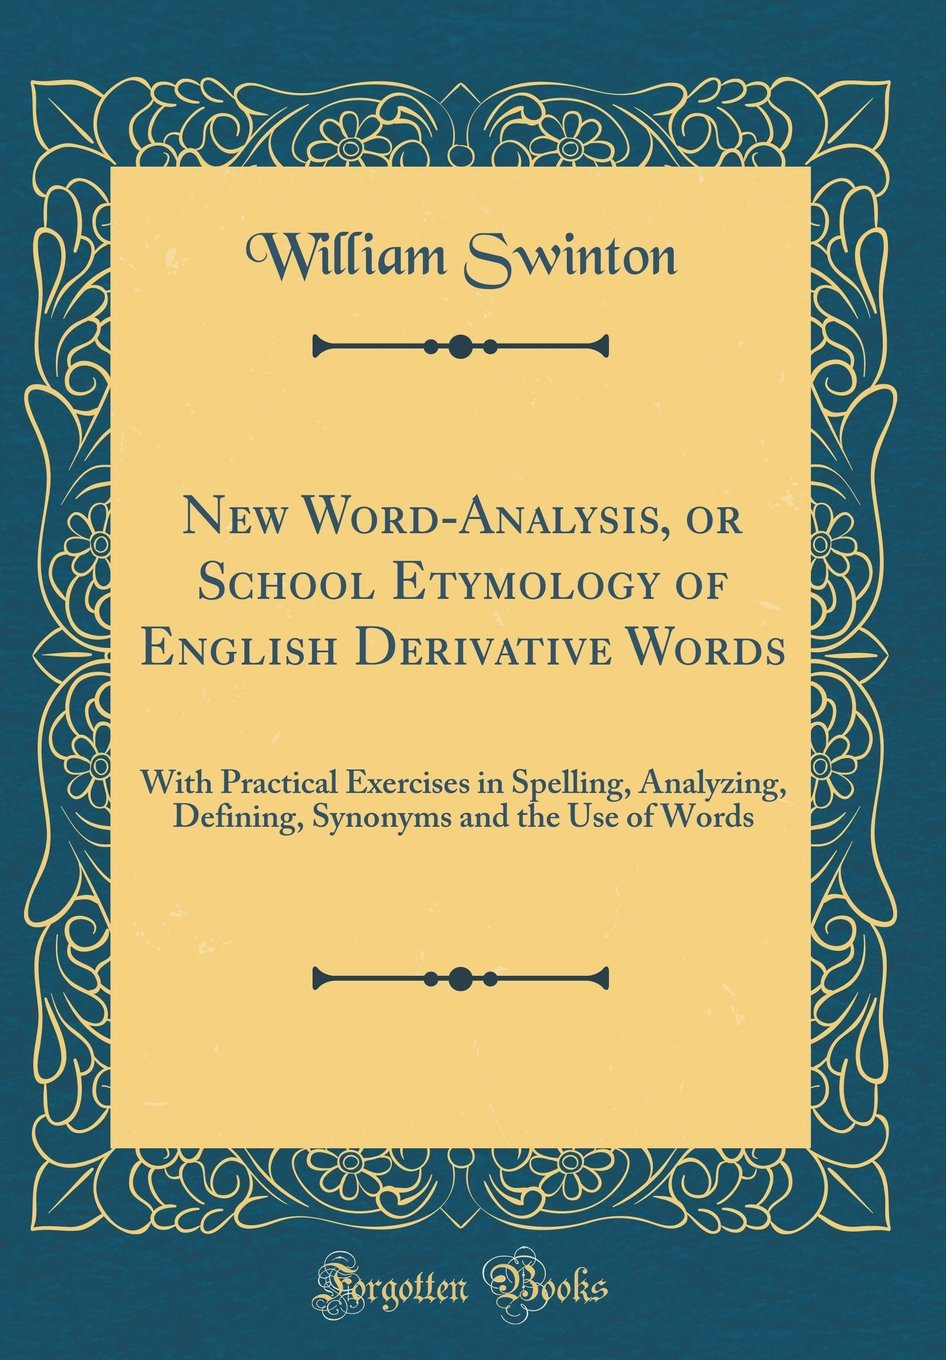 Download New Word-Analysis, or School Etymology of English Derivative Words: With Practical Exercises in Spelling, Analyzing, Defining, Synonyms and the Use of Words (Classic Reprint) pdf epub